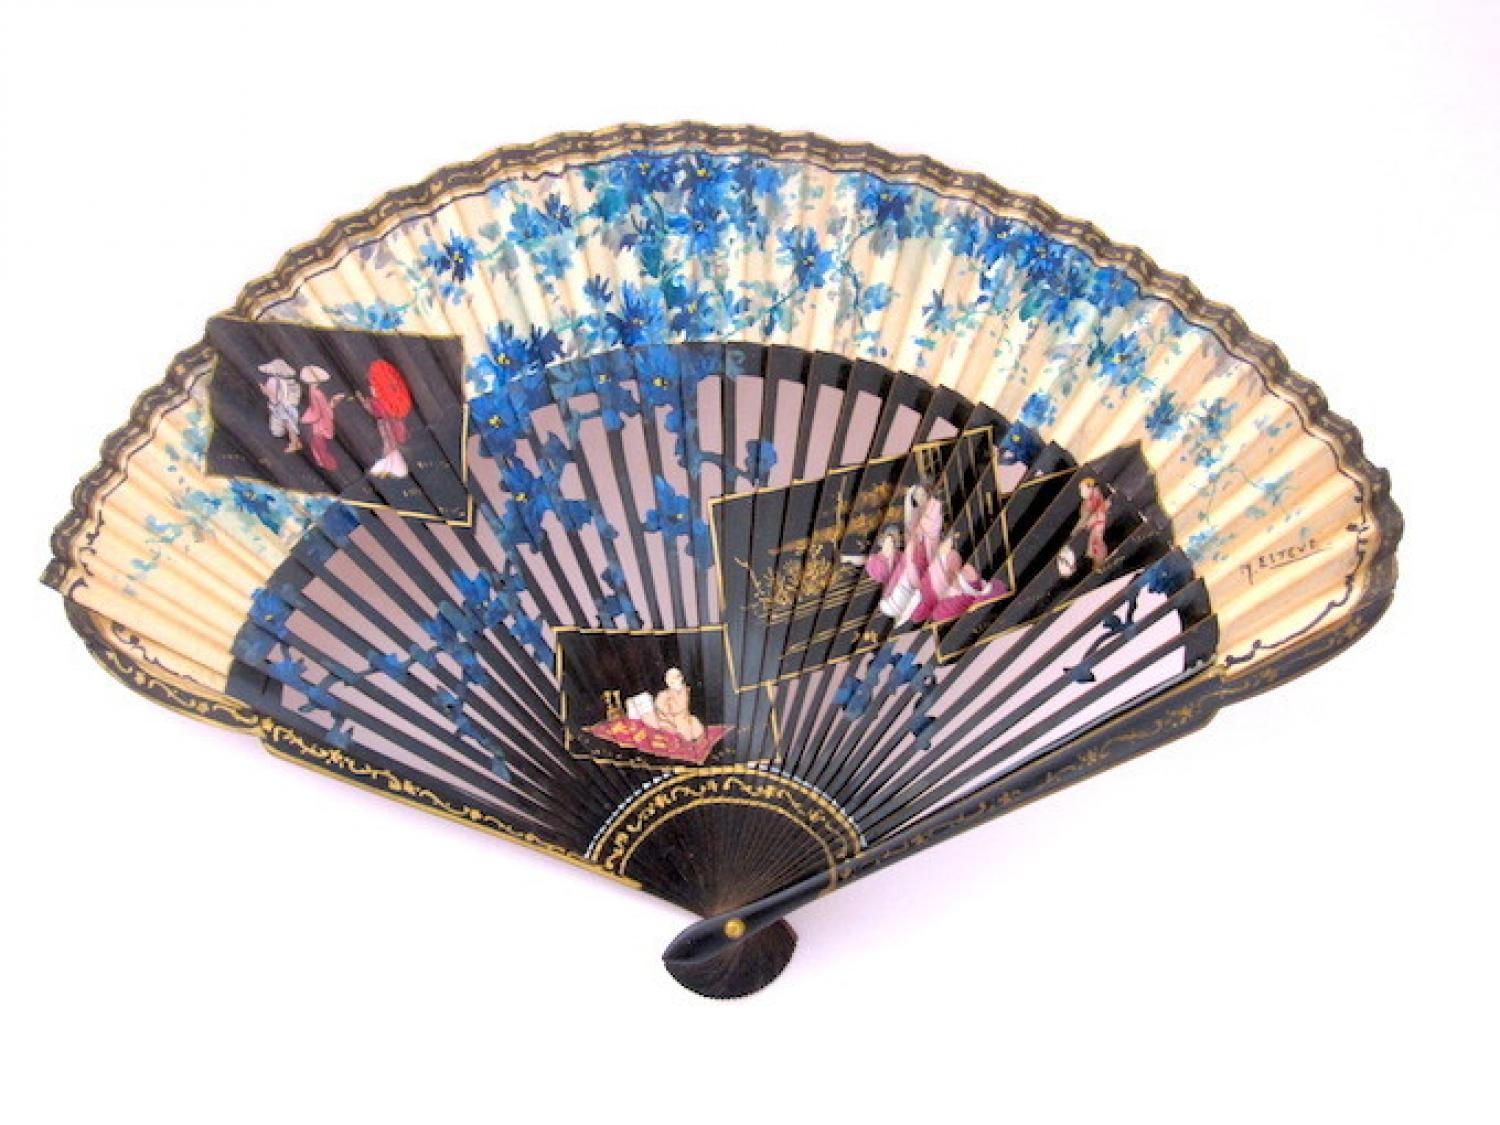 Antique Rare Fan with' Chinoiserie' Design